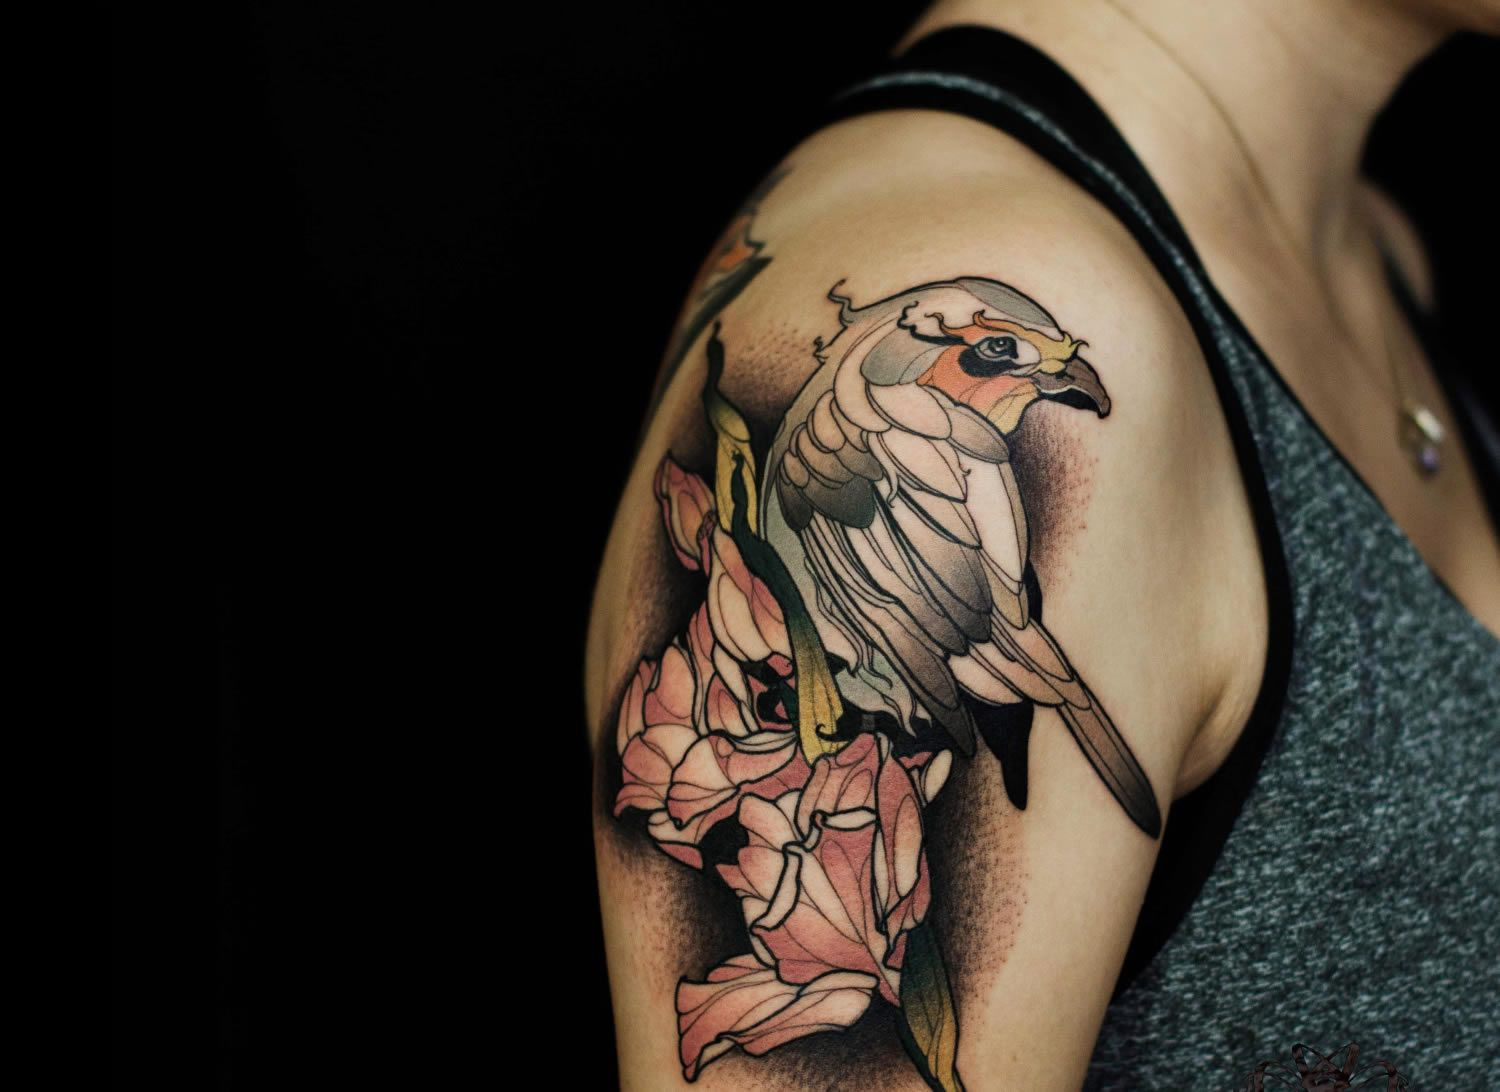 Tattoos Fuse Fine Art with Polygons by Renan Batista | Illusion Magazine